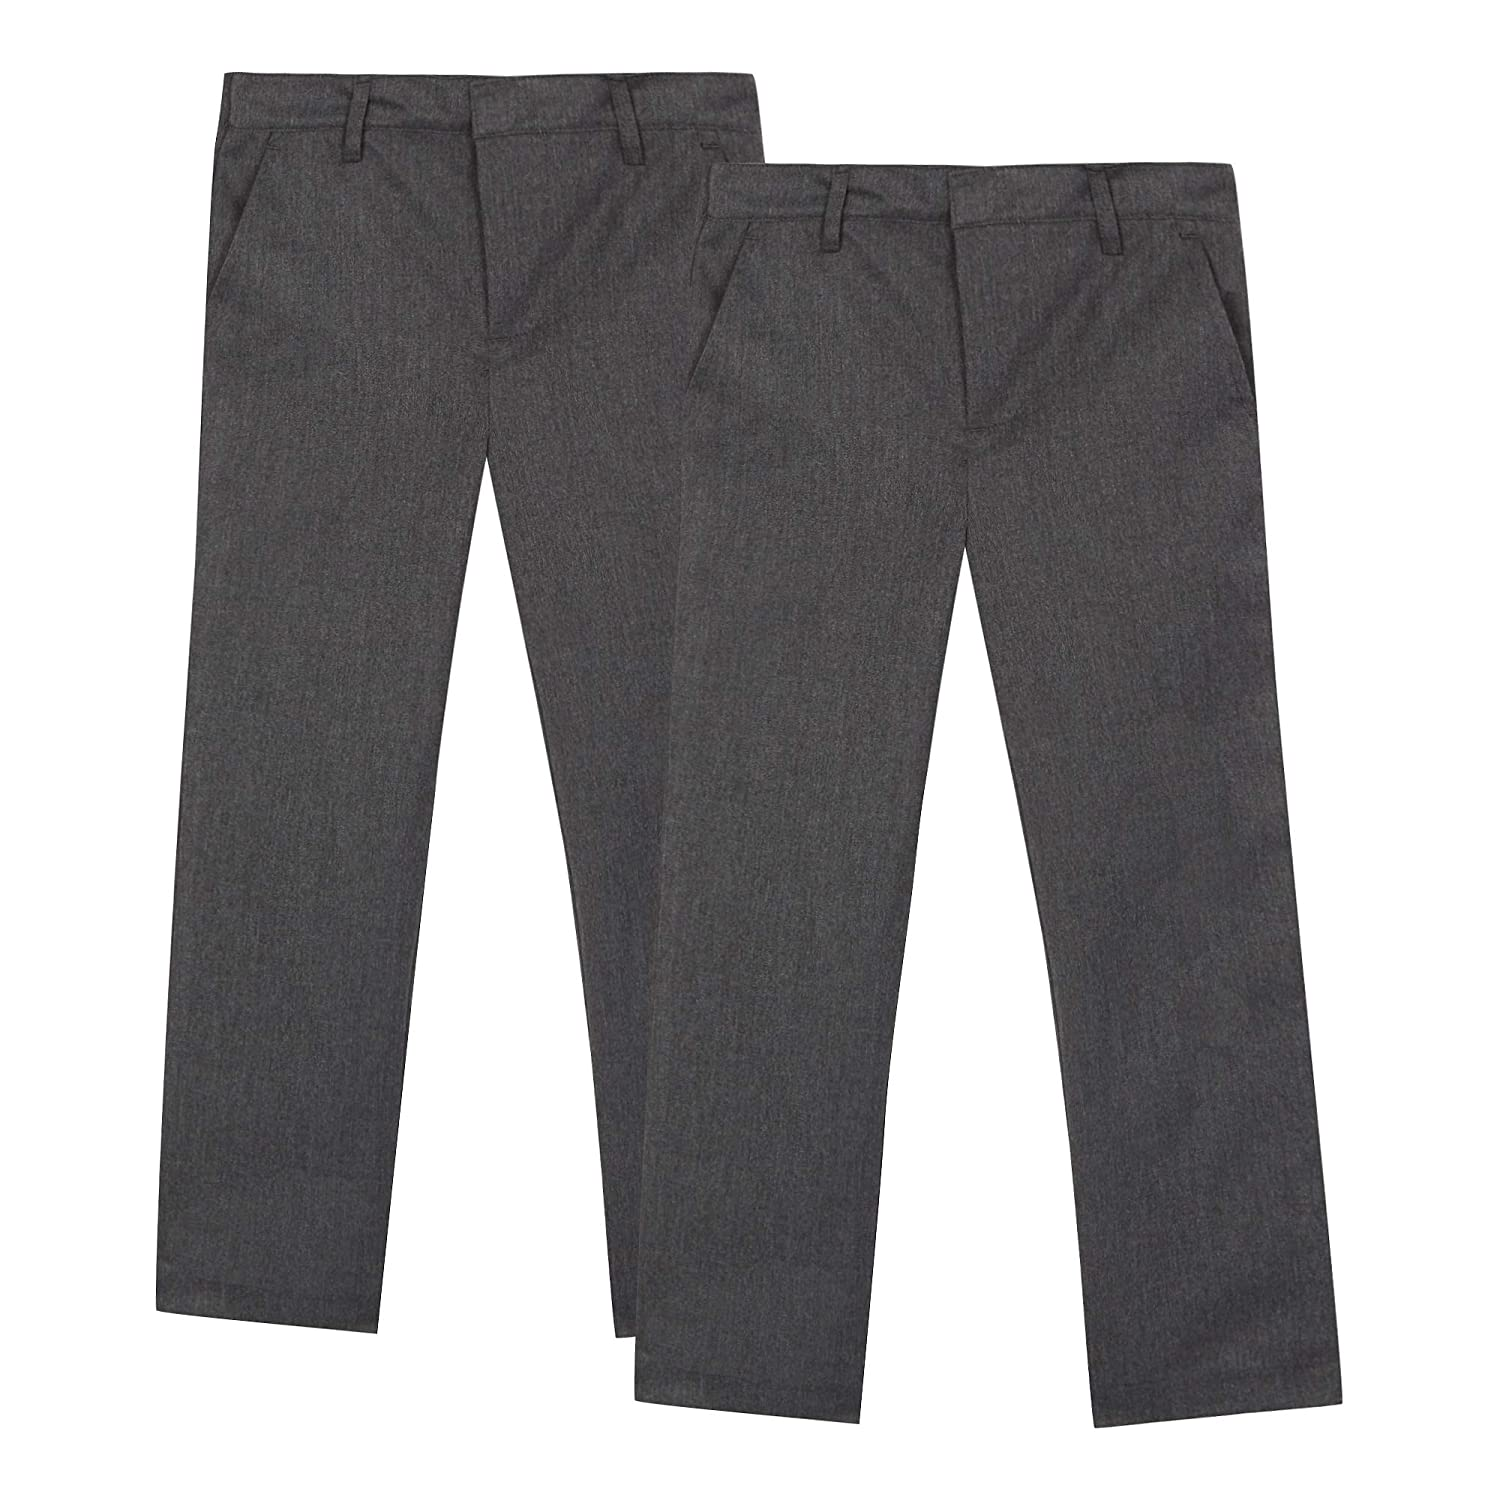 Debenhams Kids Pack of Two Boys' Grey Flat Front School Trousers